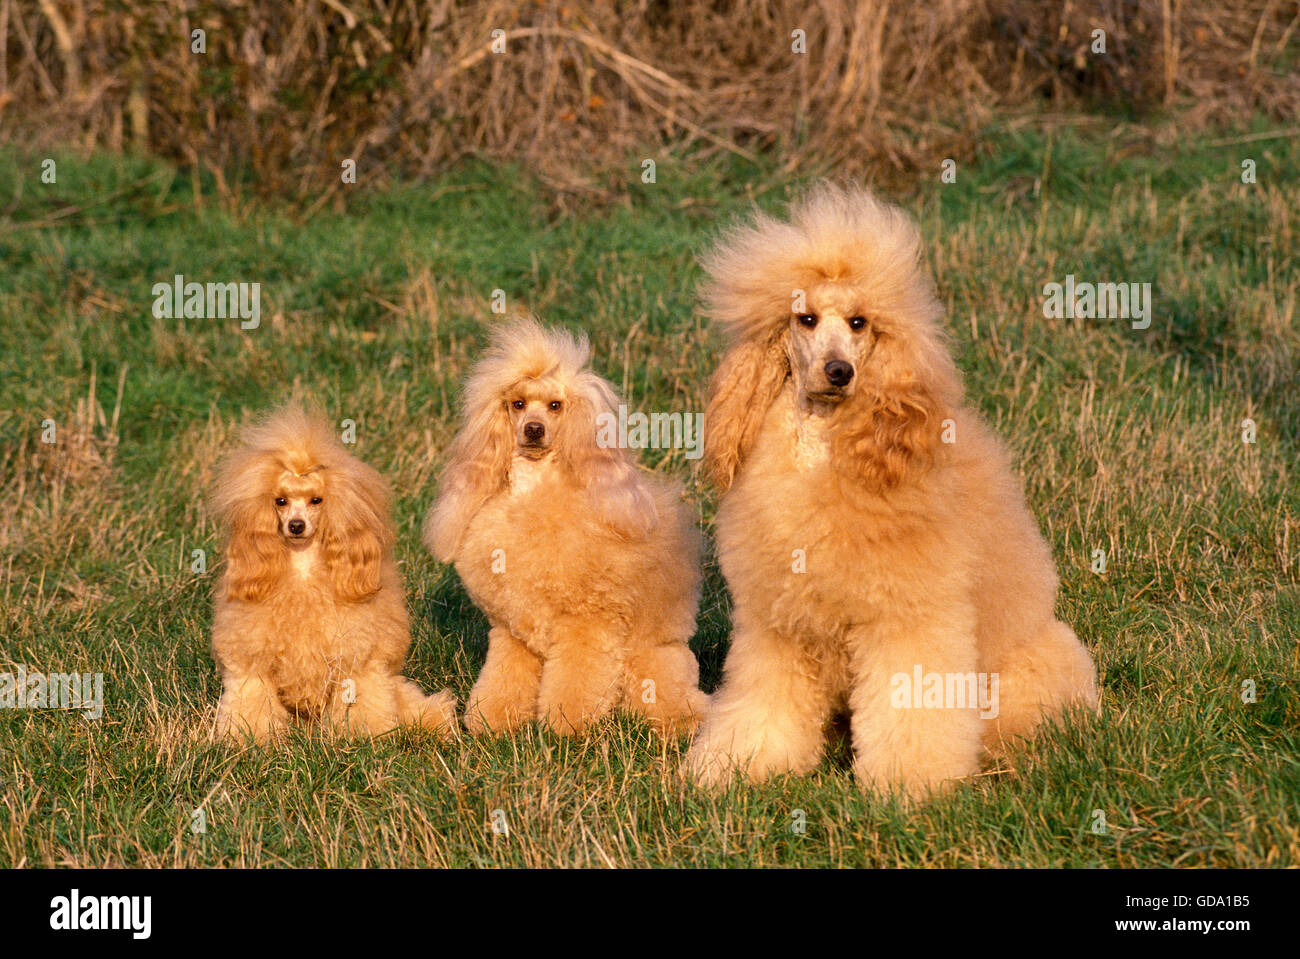 Apricot Toy, Standard and Giant Poodle sitting on Grass - Stock Image